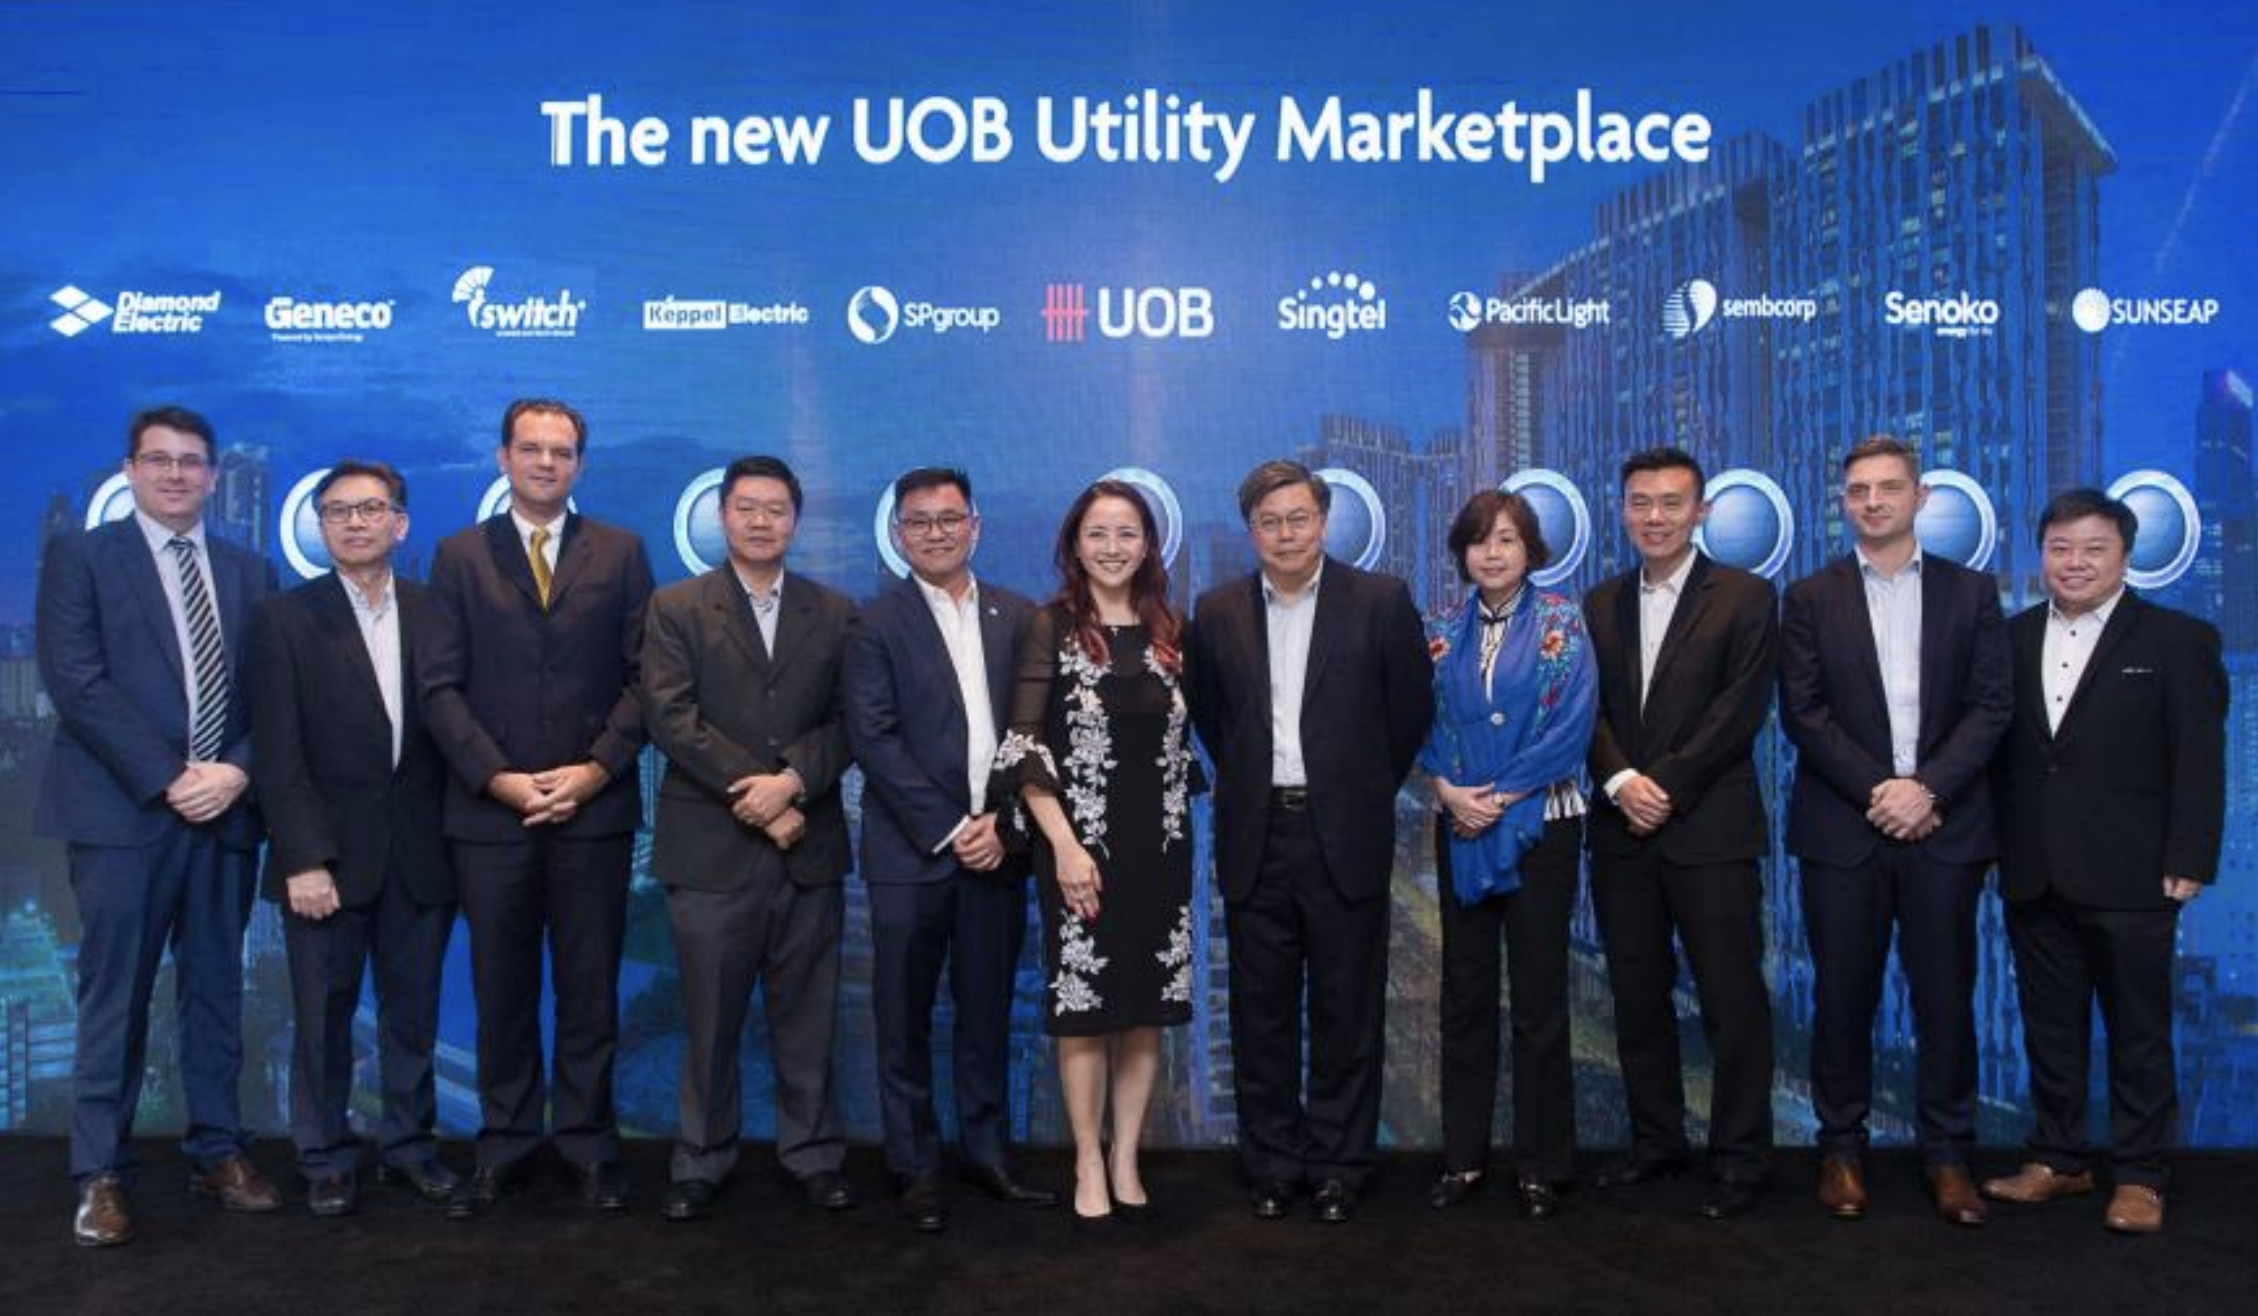 UOB brings together Singapore's largest network of utility providers for the UOB Utility Marketplace. Ms Jacquelyn Tan, Head of Personal Financial Services Singapore, UOB (centre) with the 10 utility partners at the launch of the UOB Utility Marketplace. Photo courtesy: UOB